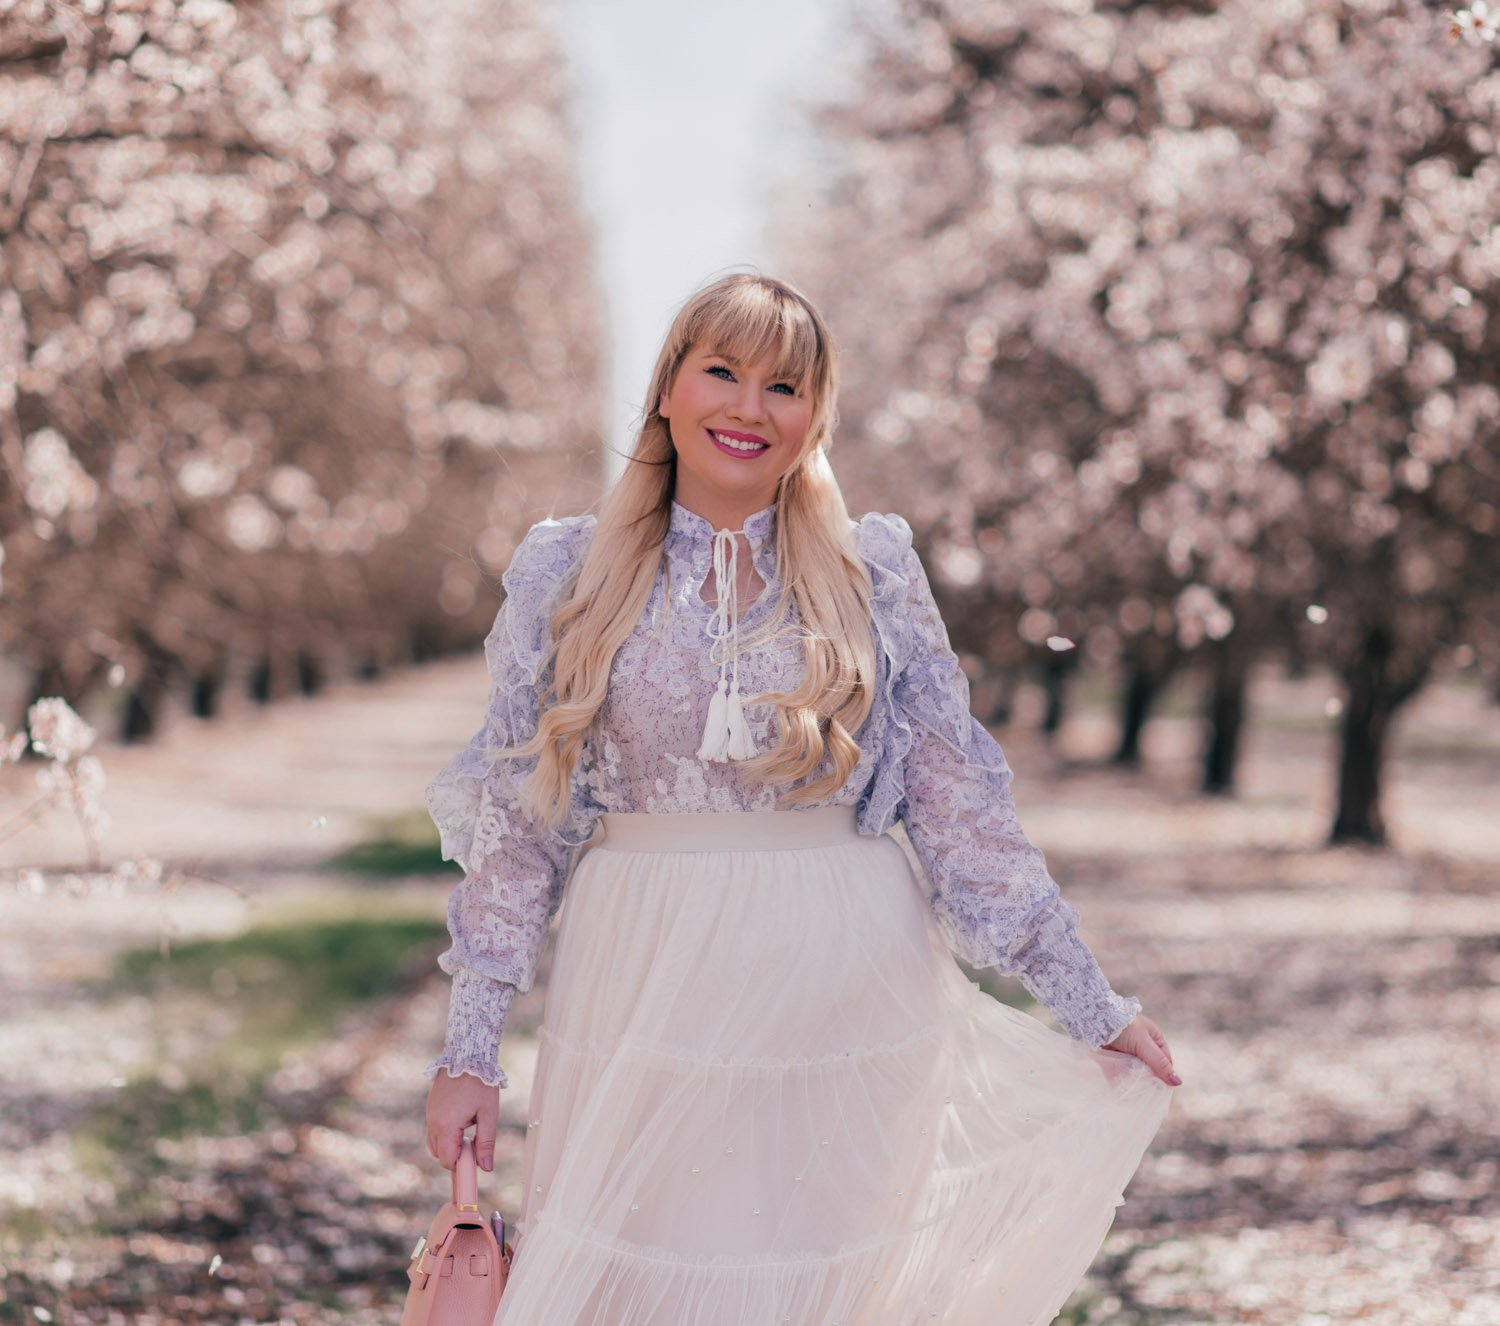 Fashion Blogger Elizabeth Hugen styles a Feminine Easter Outfit for Spring with a Chicwish ruffled top and tulle skirt and Teddy Blake handbag